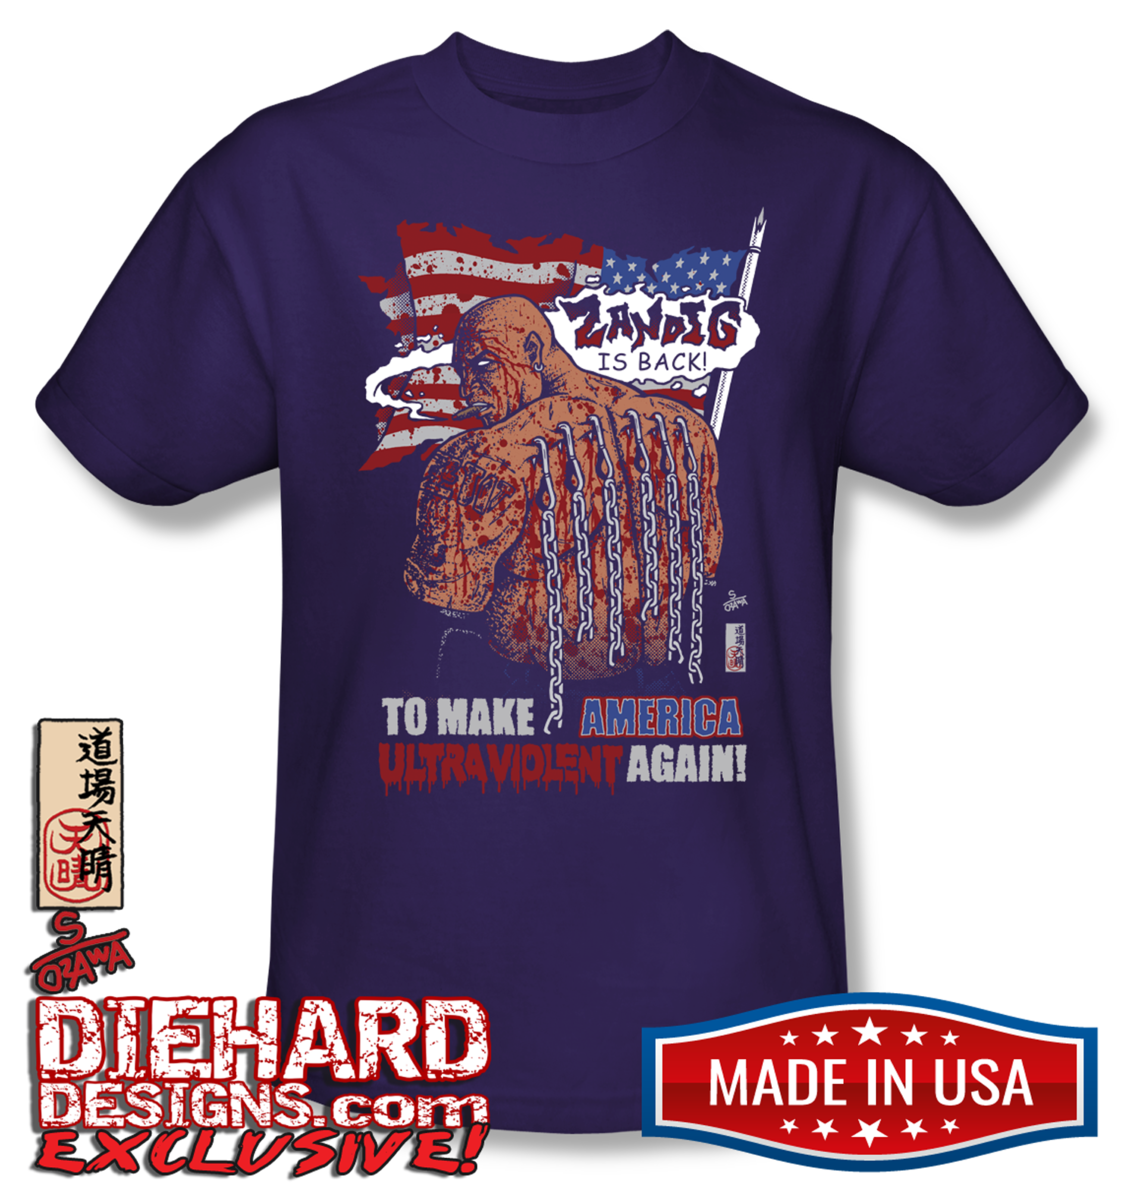 Zandig make america ultraviolent again made in usa t shirt for How to copyright t shirt designs